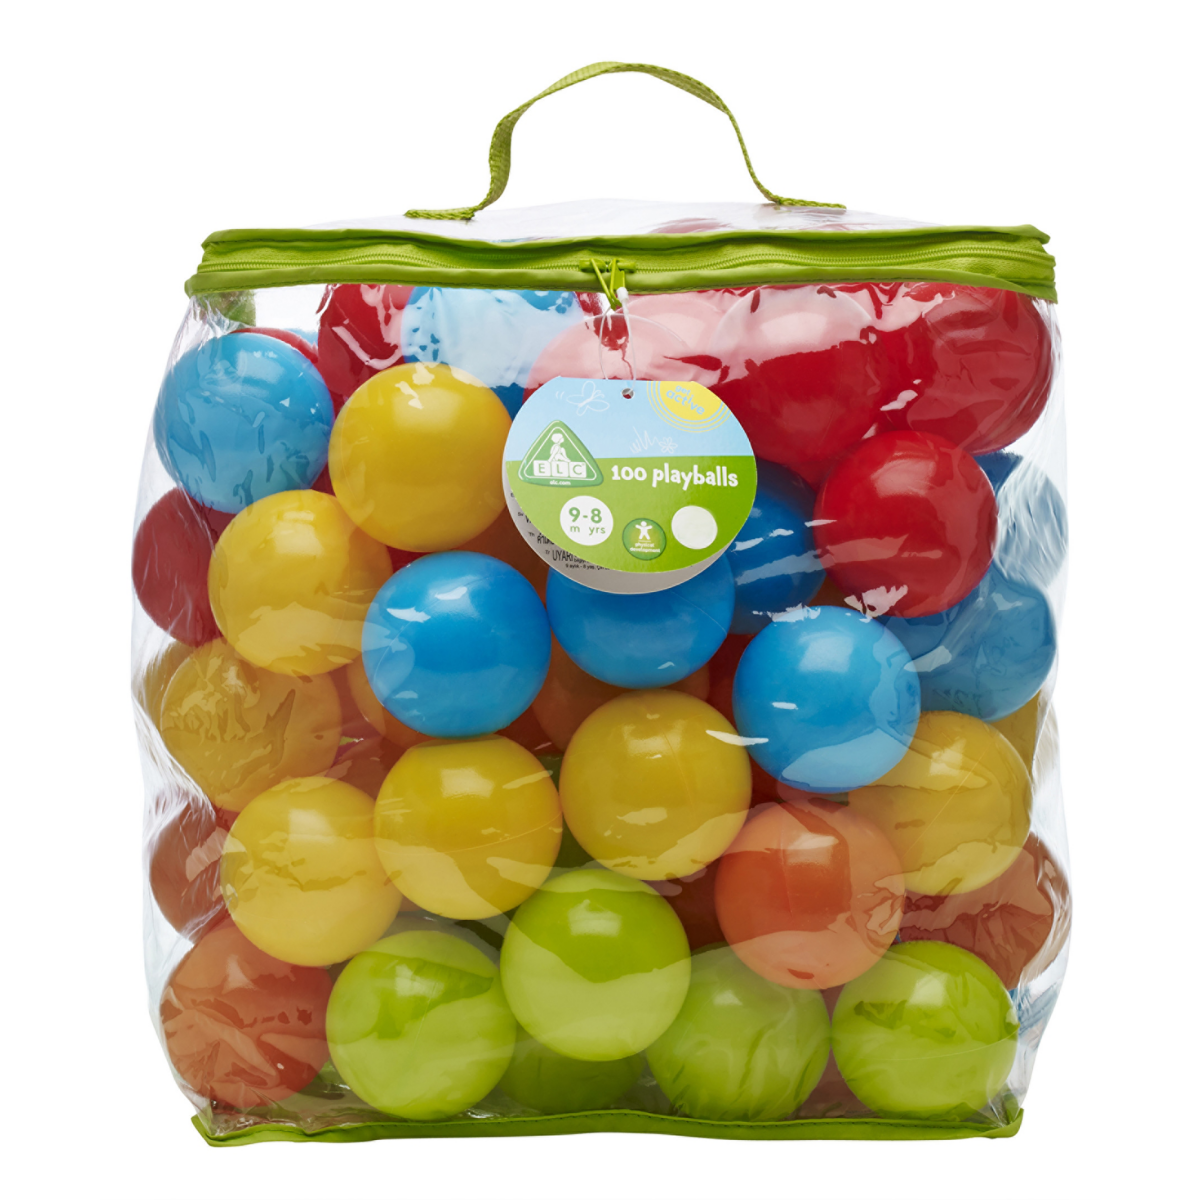 100 Playballs from Early Learning Center